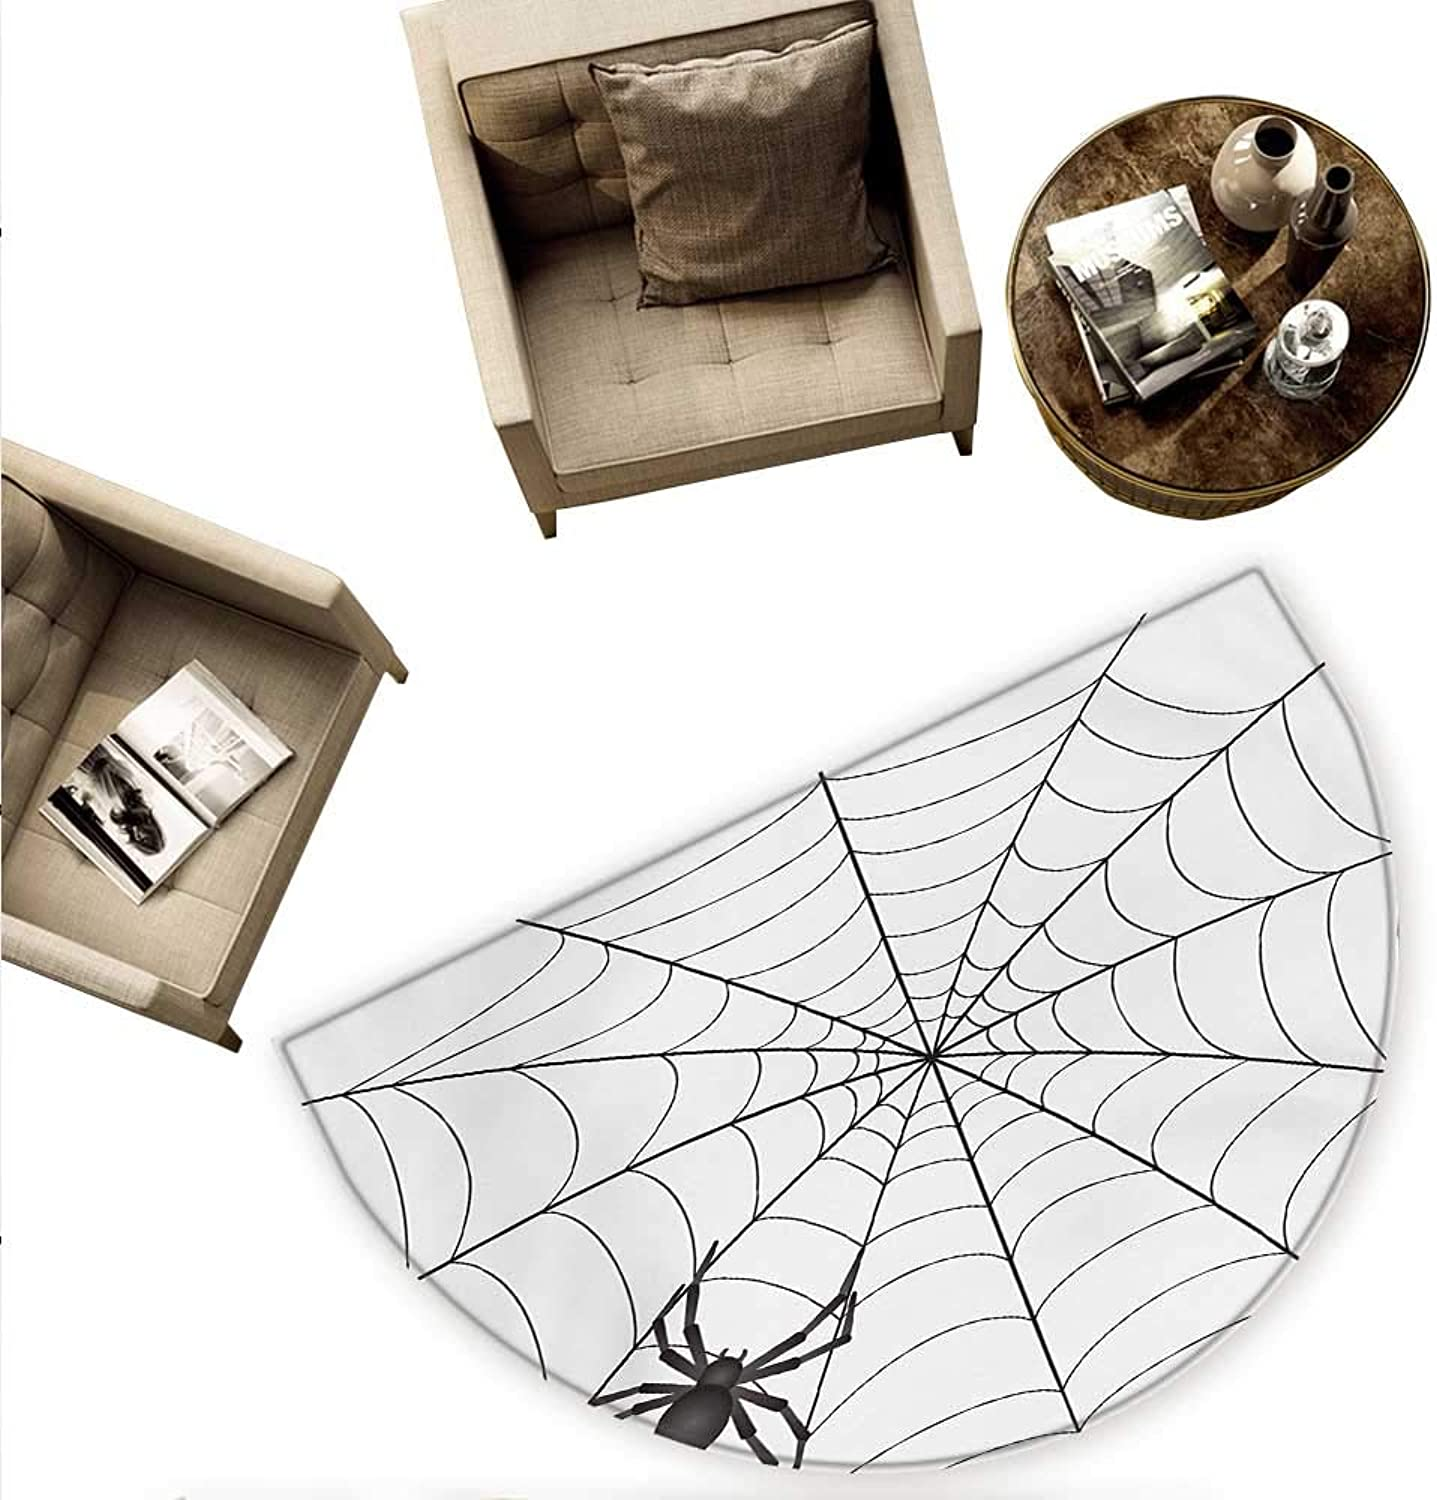 Spider Web Semicircular Cushion Gothic Fairytale Elements Creepy Scary Dangerous Spider Sticky Catch Entry Door Mat H 70.8  xD 106.3  Charcoal Grey White